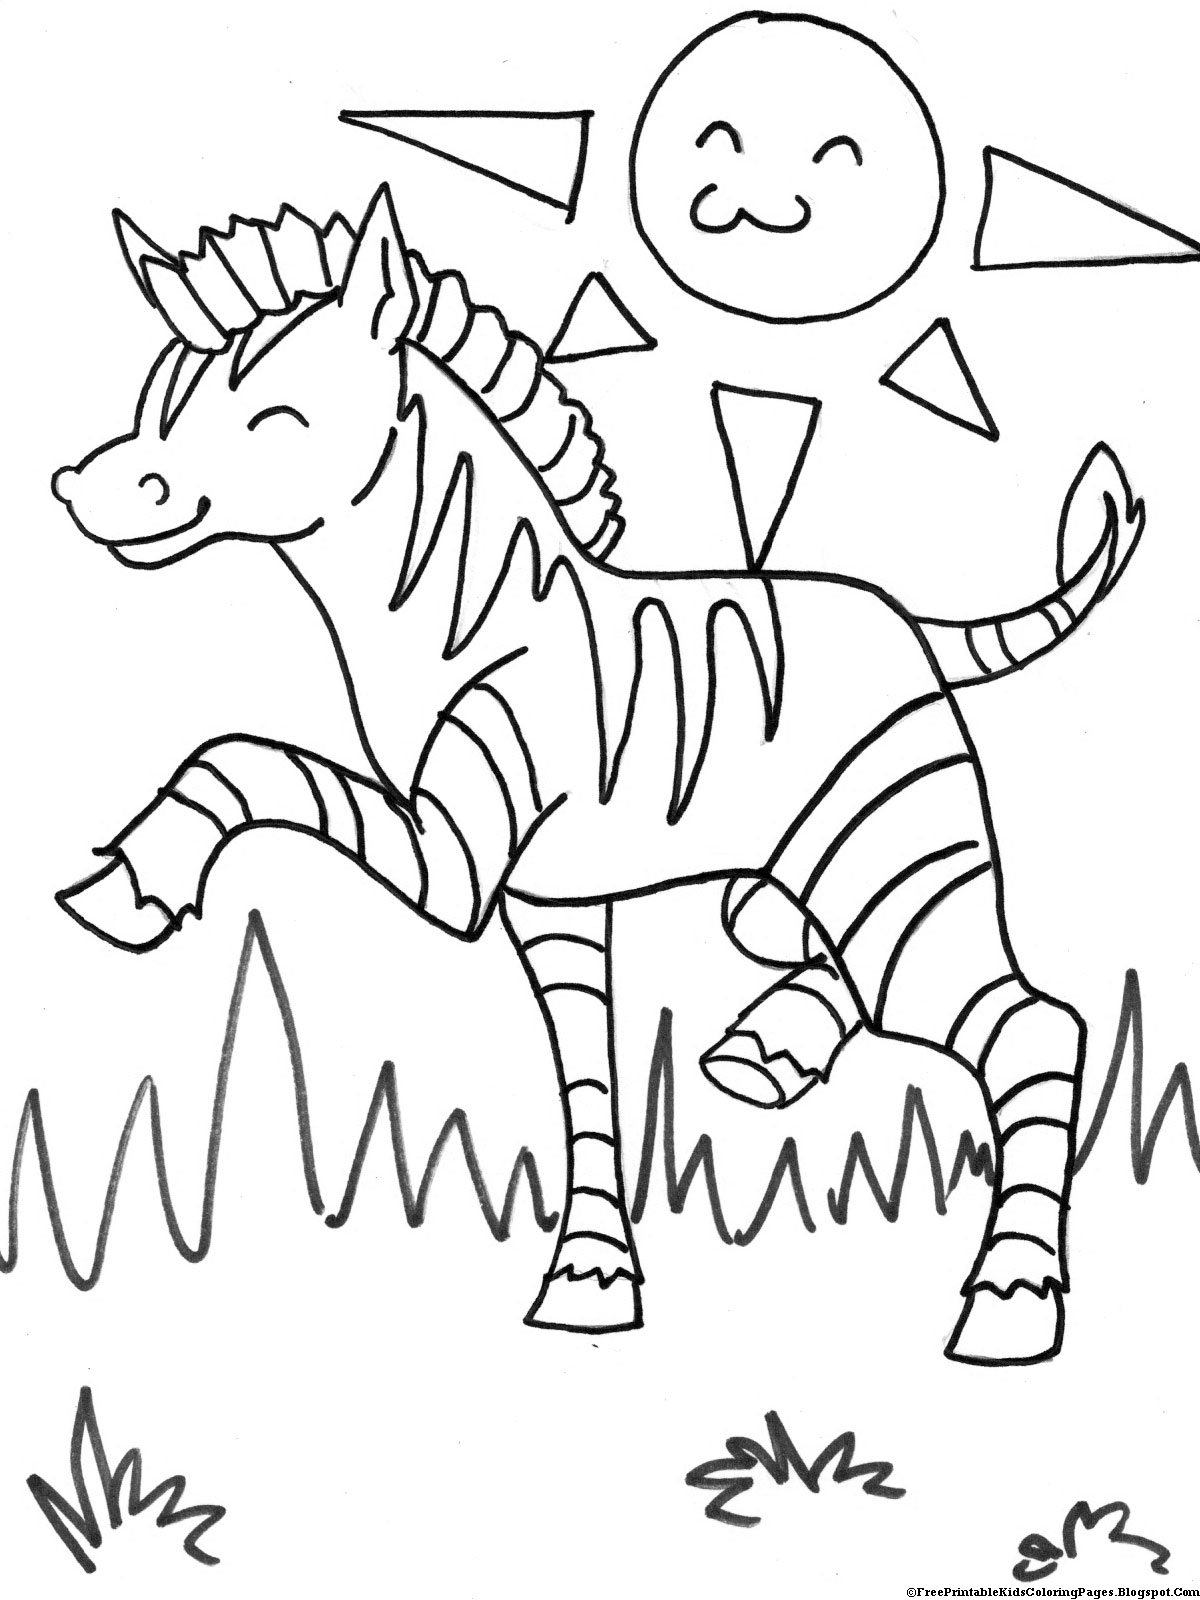 coloring outline for kids pets coloring pages  best coloring pages for kids outline coloring for kids